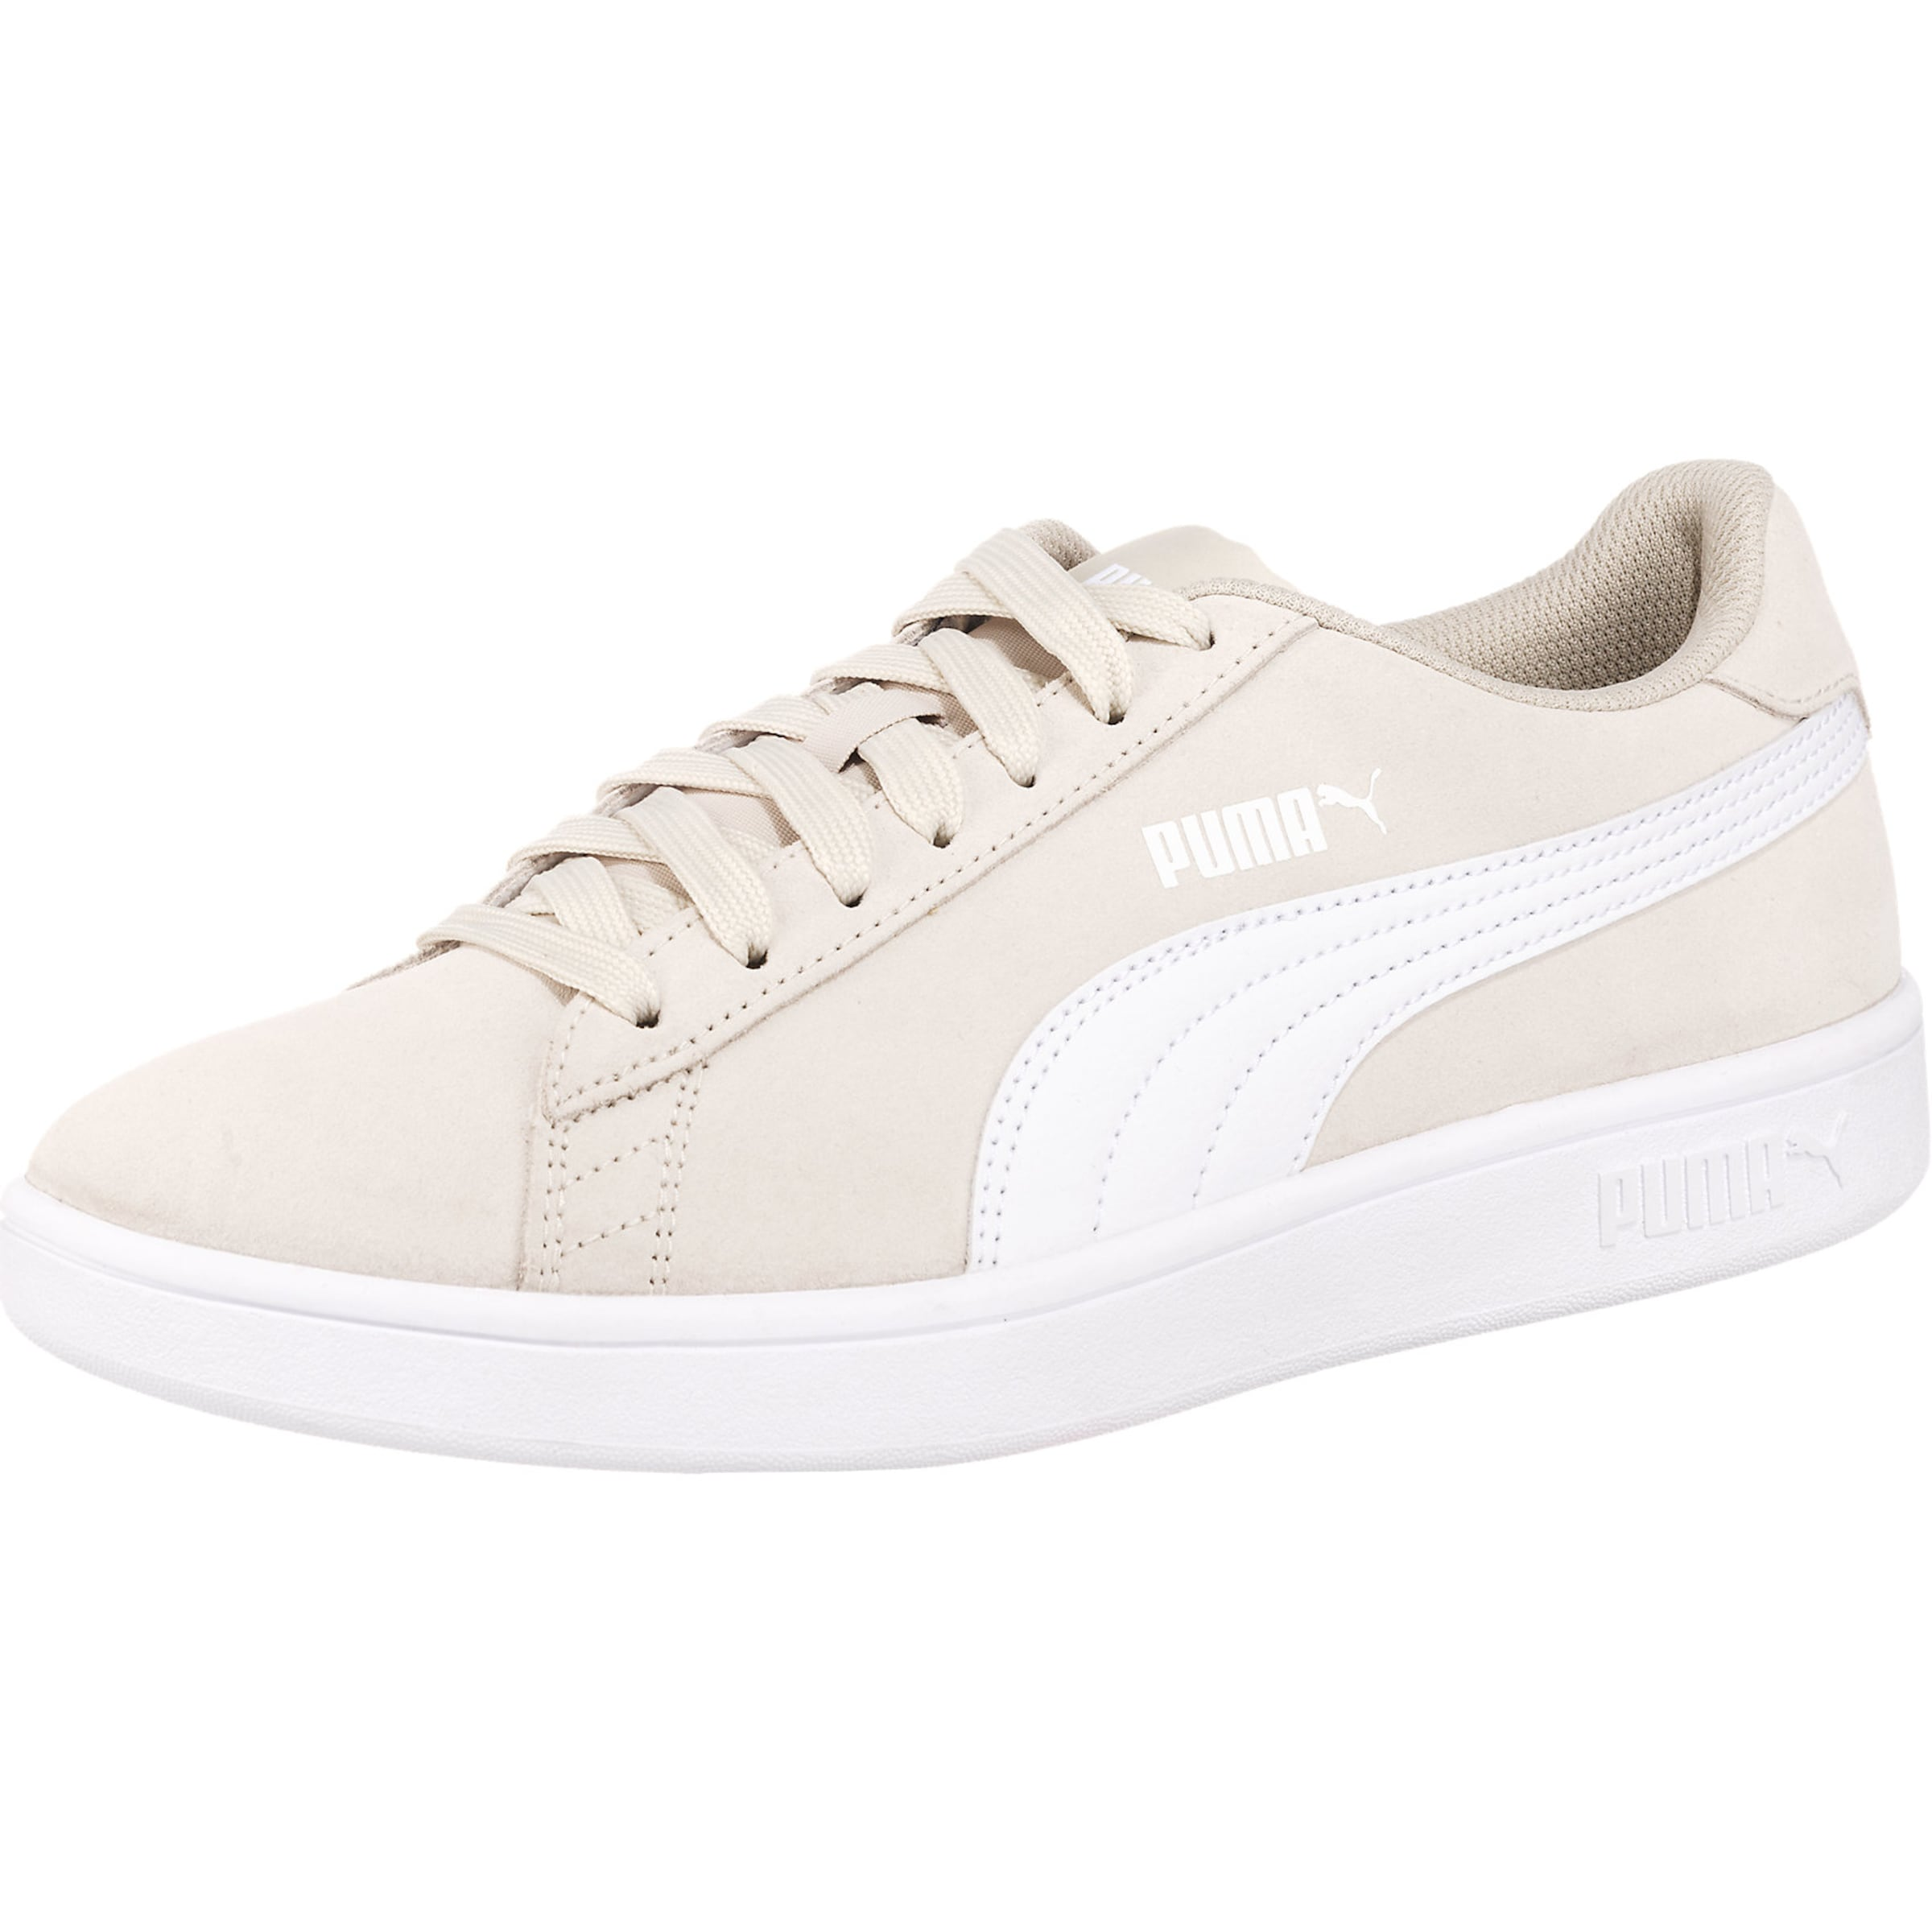 PUMA Smash v2 Sneakers Low